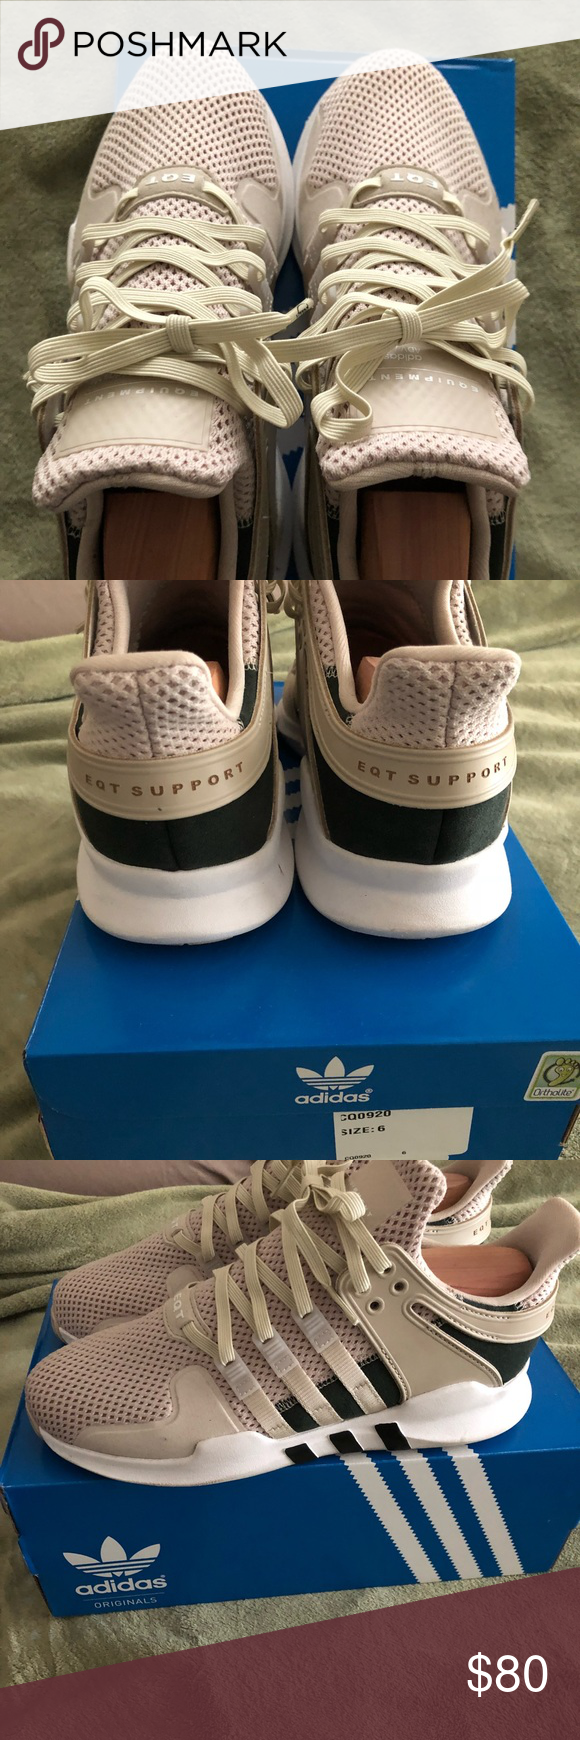 lowest price 09be0 c26cd Adidas EQT Support ADV J Grade School Boys Size 6 These ...